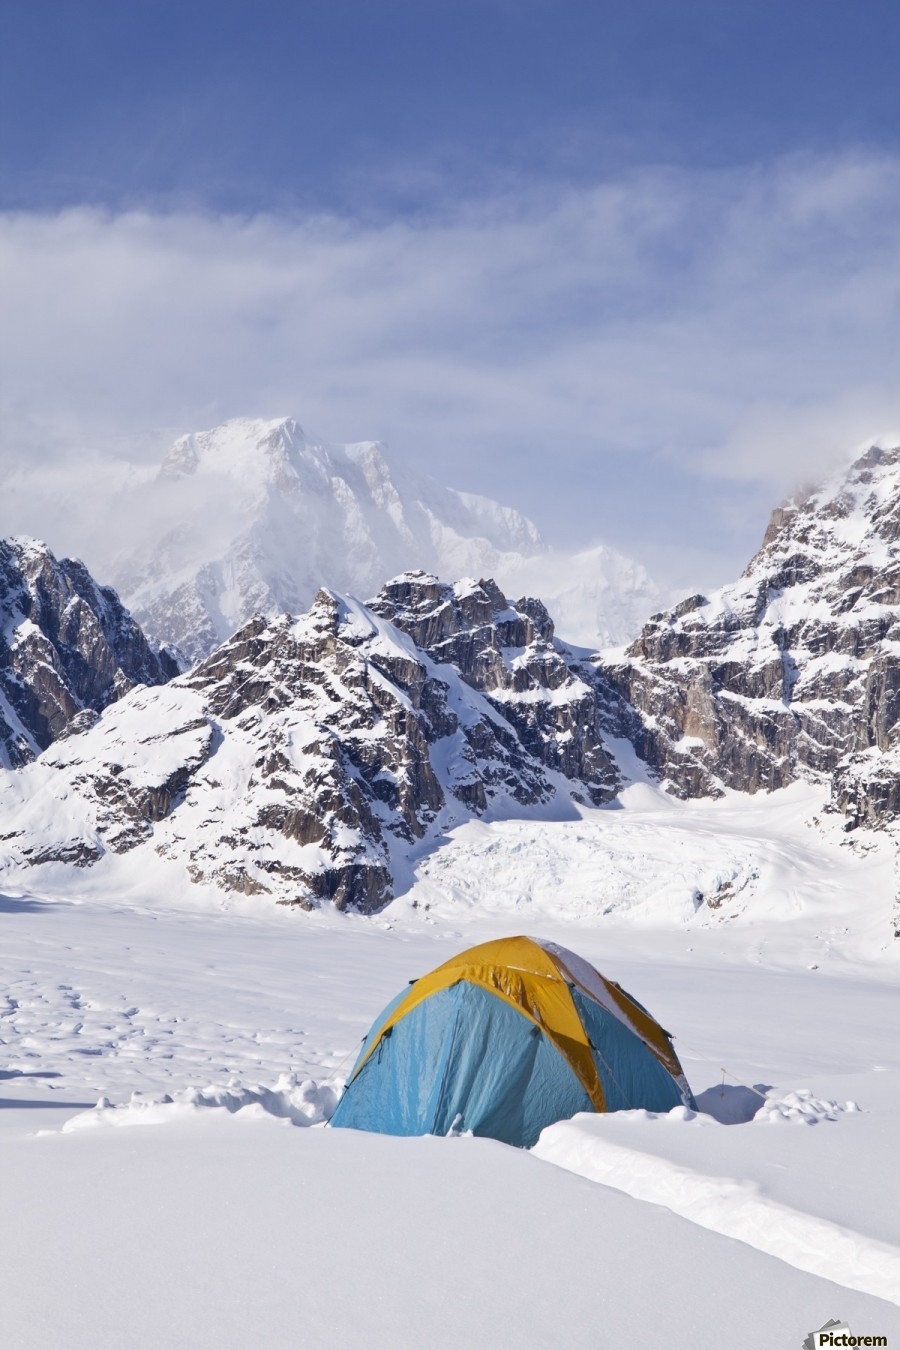 Mountain tent on ridge in winter, Mt. McKinley in background, part of Mt. Dan Beard immediately behind tent, Denali National Park and Preserve; Alaska, United States of America  Print